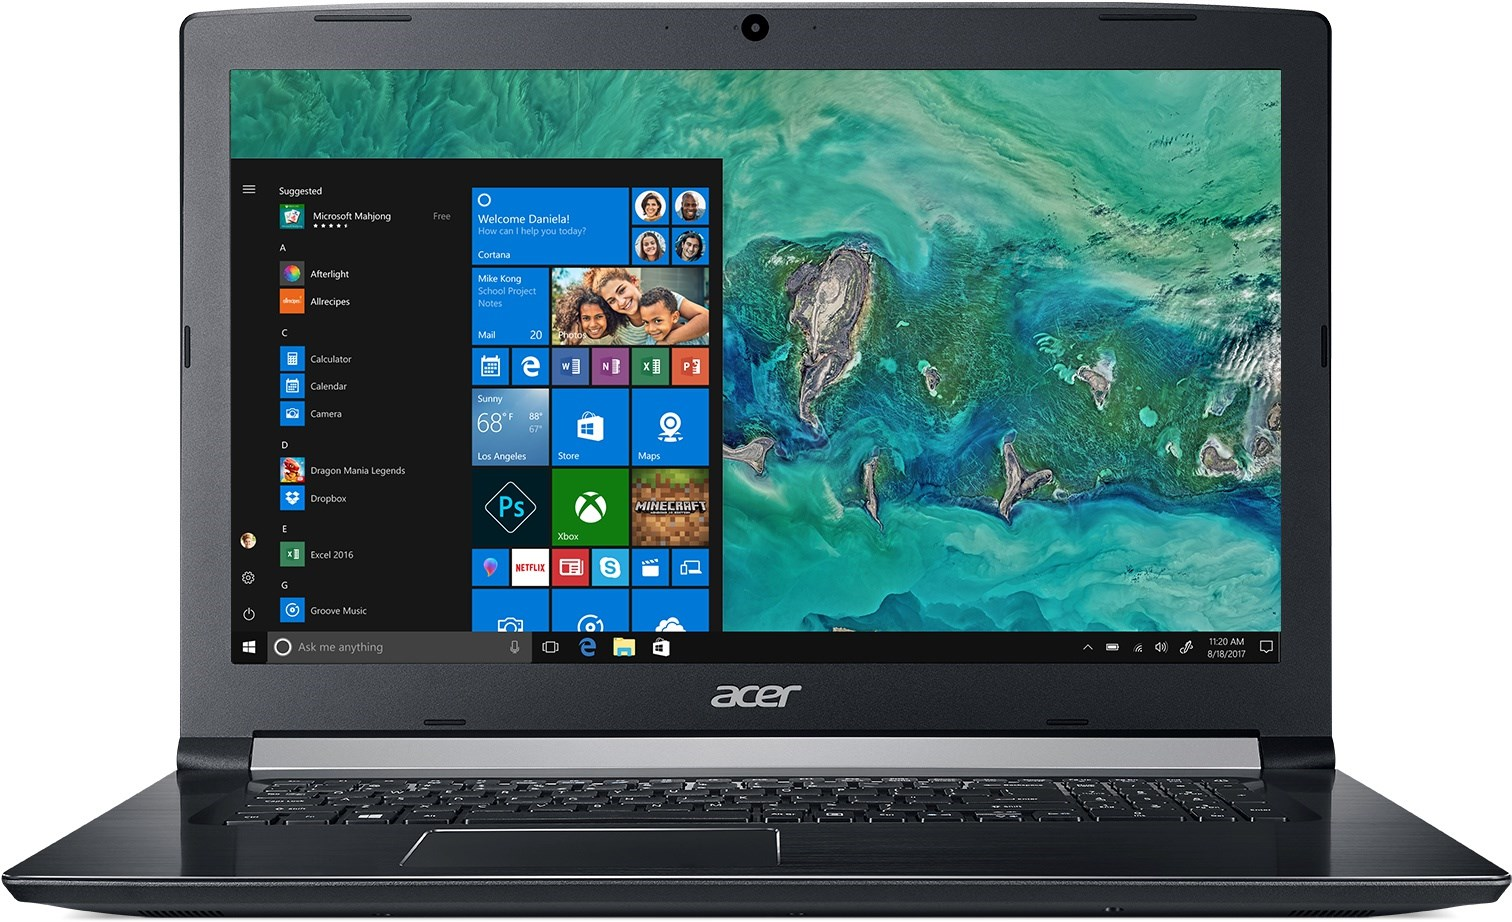 ACER Aspire 5 A517-51-35KW